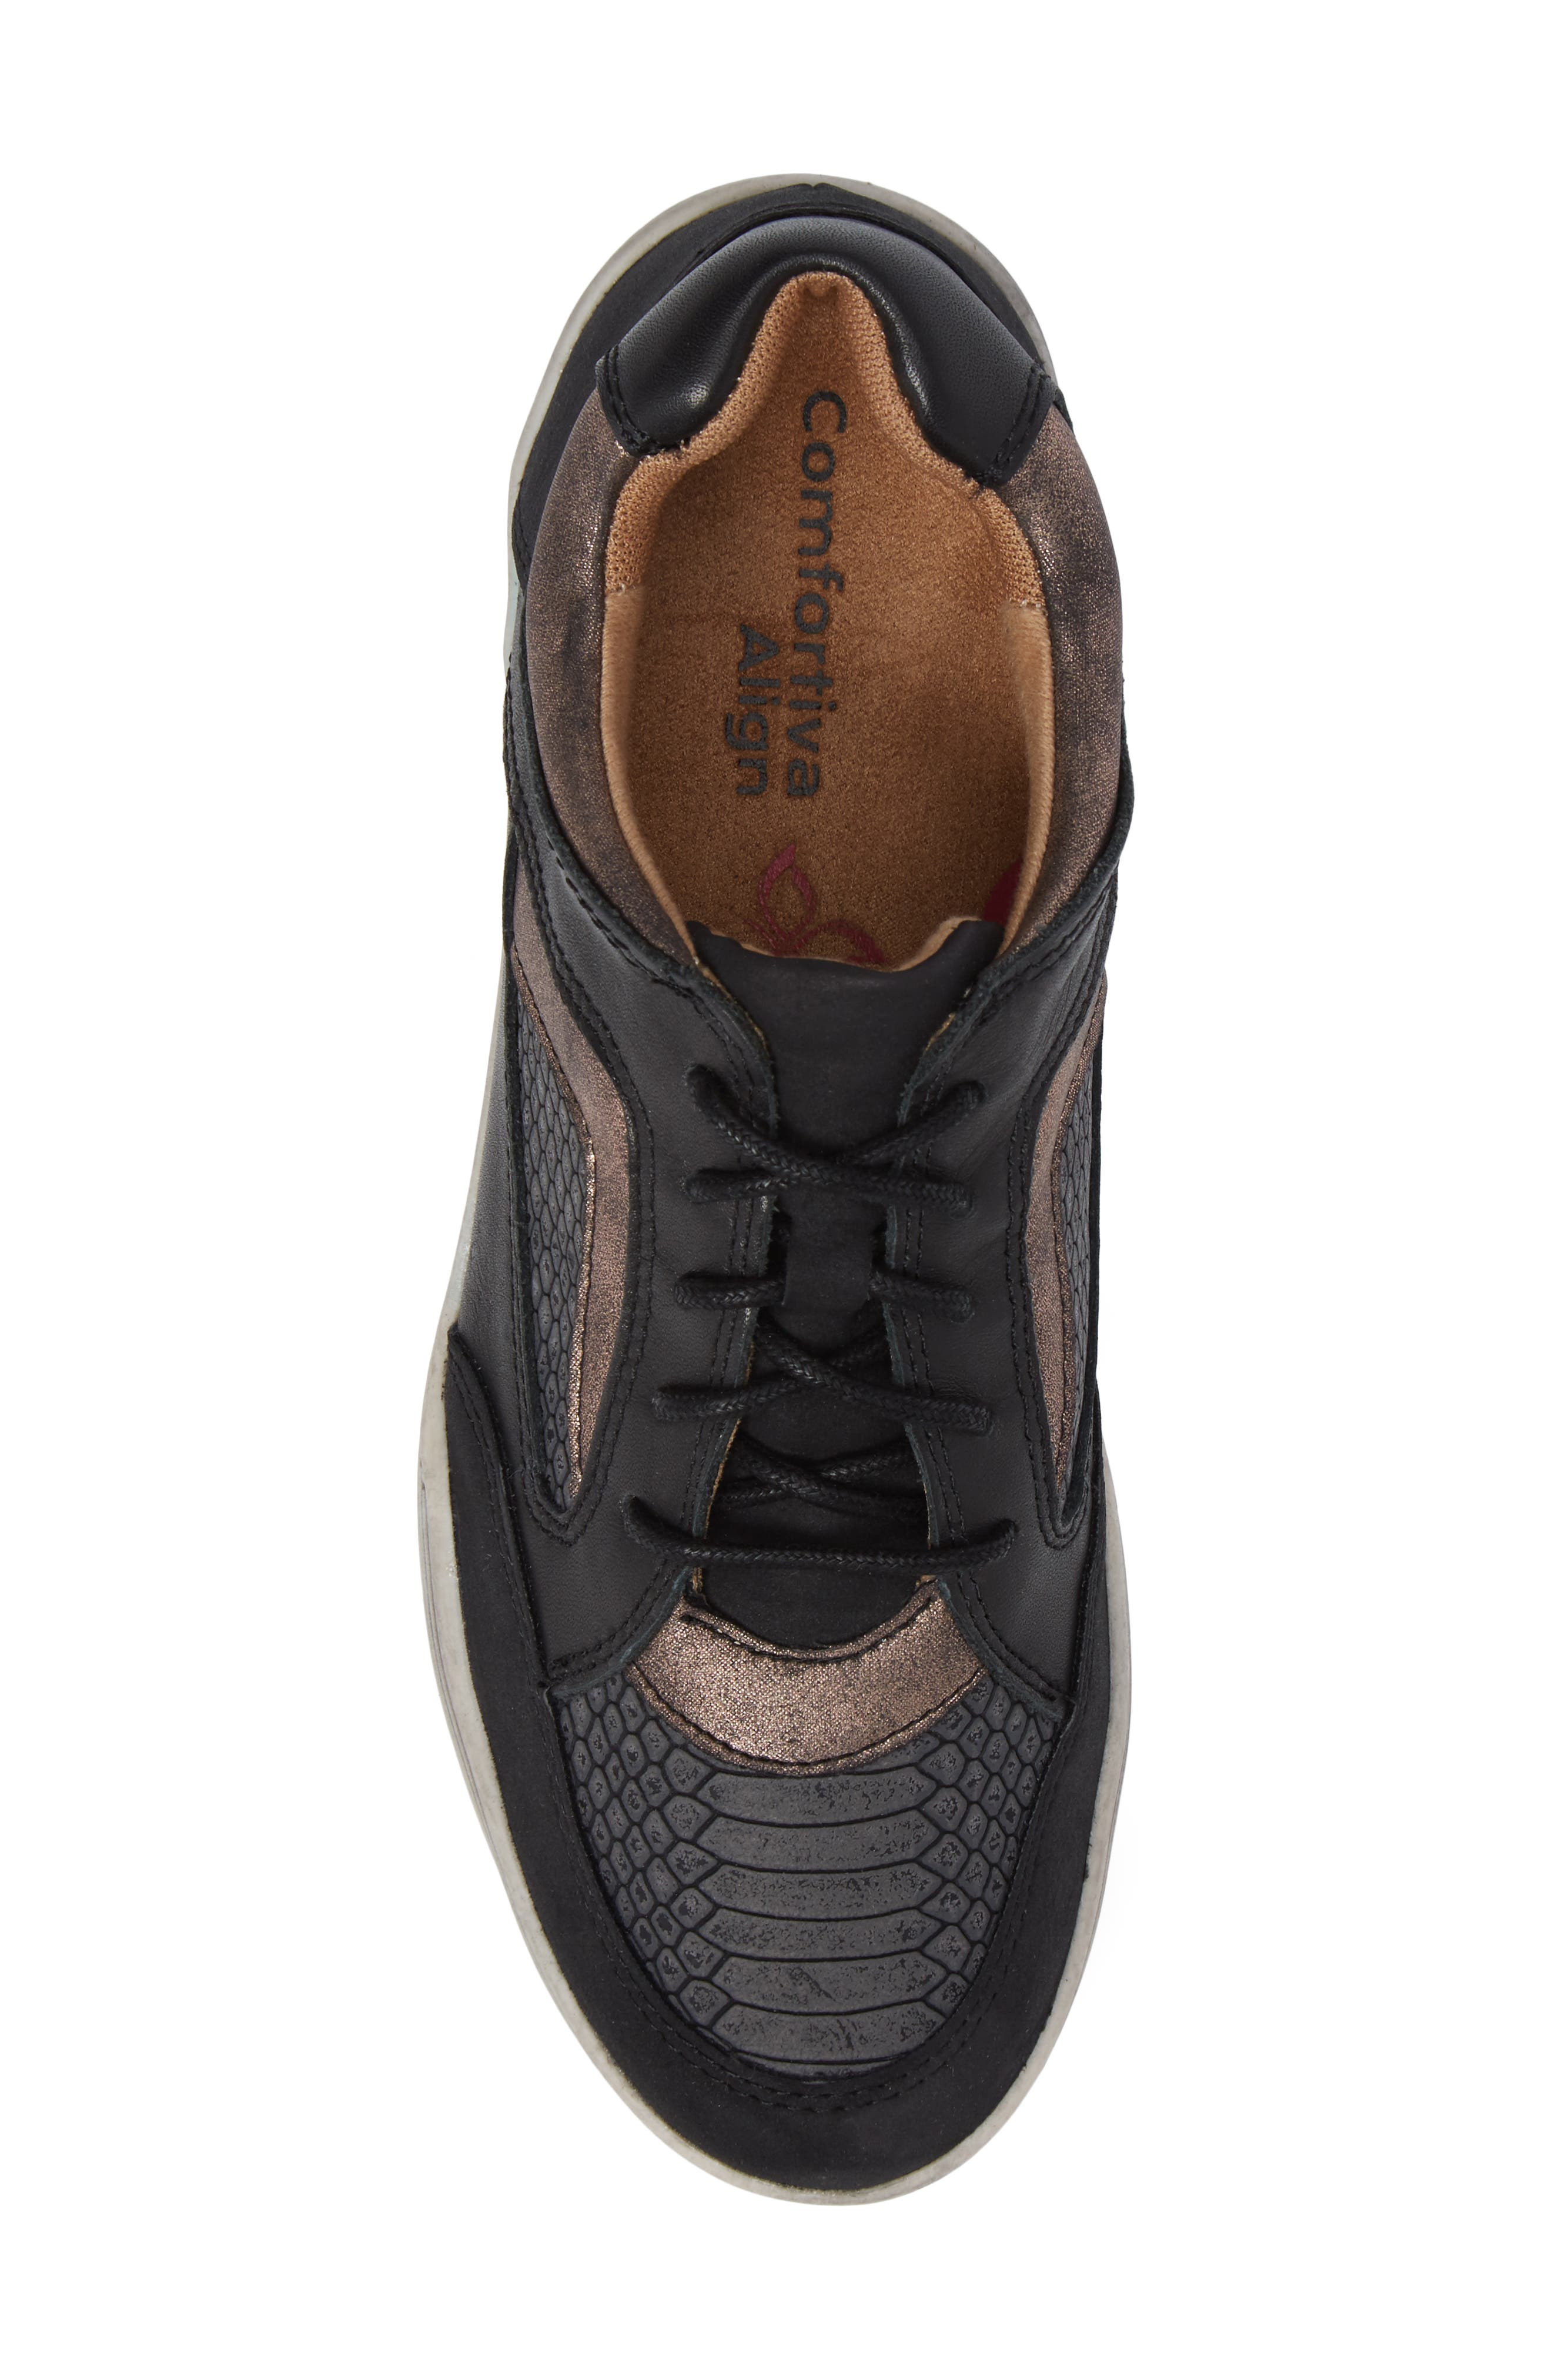 Lemont Snake Embossed Sneaker,                             Alternate thumbnail 5, color,                             BLACK SNAKE PRINT LEATHER